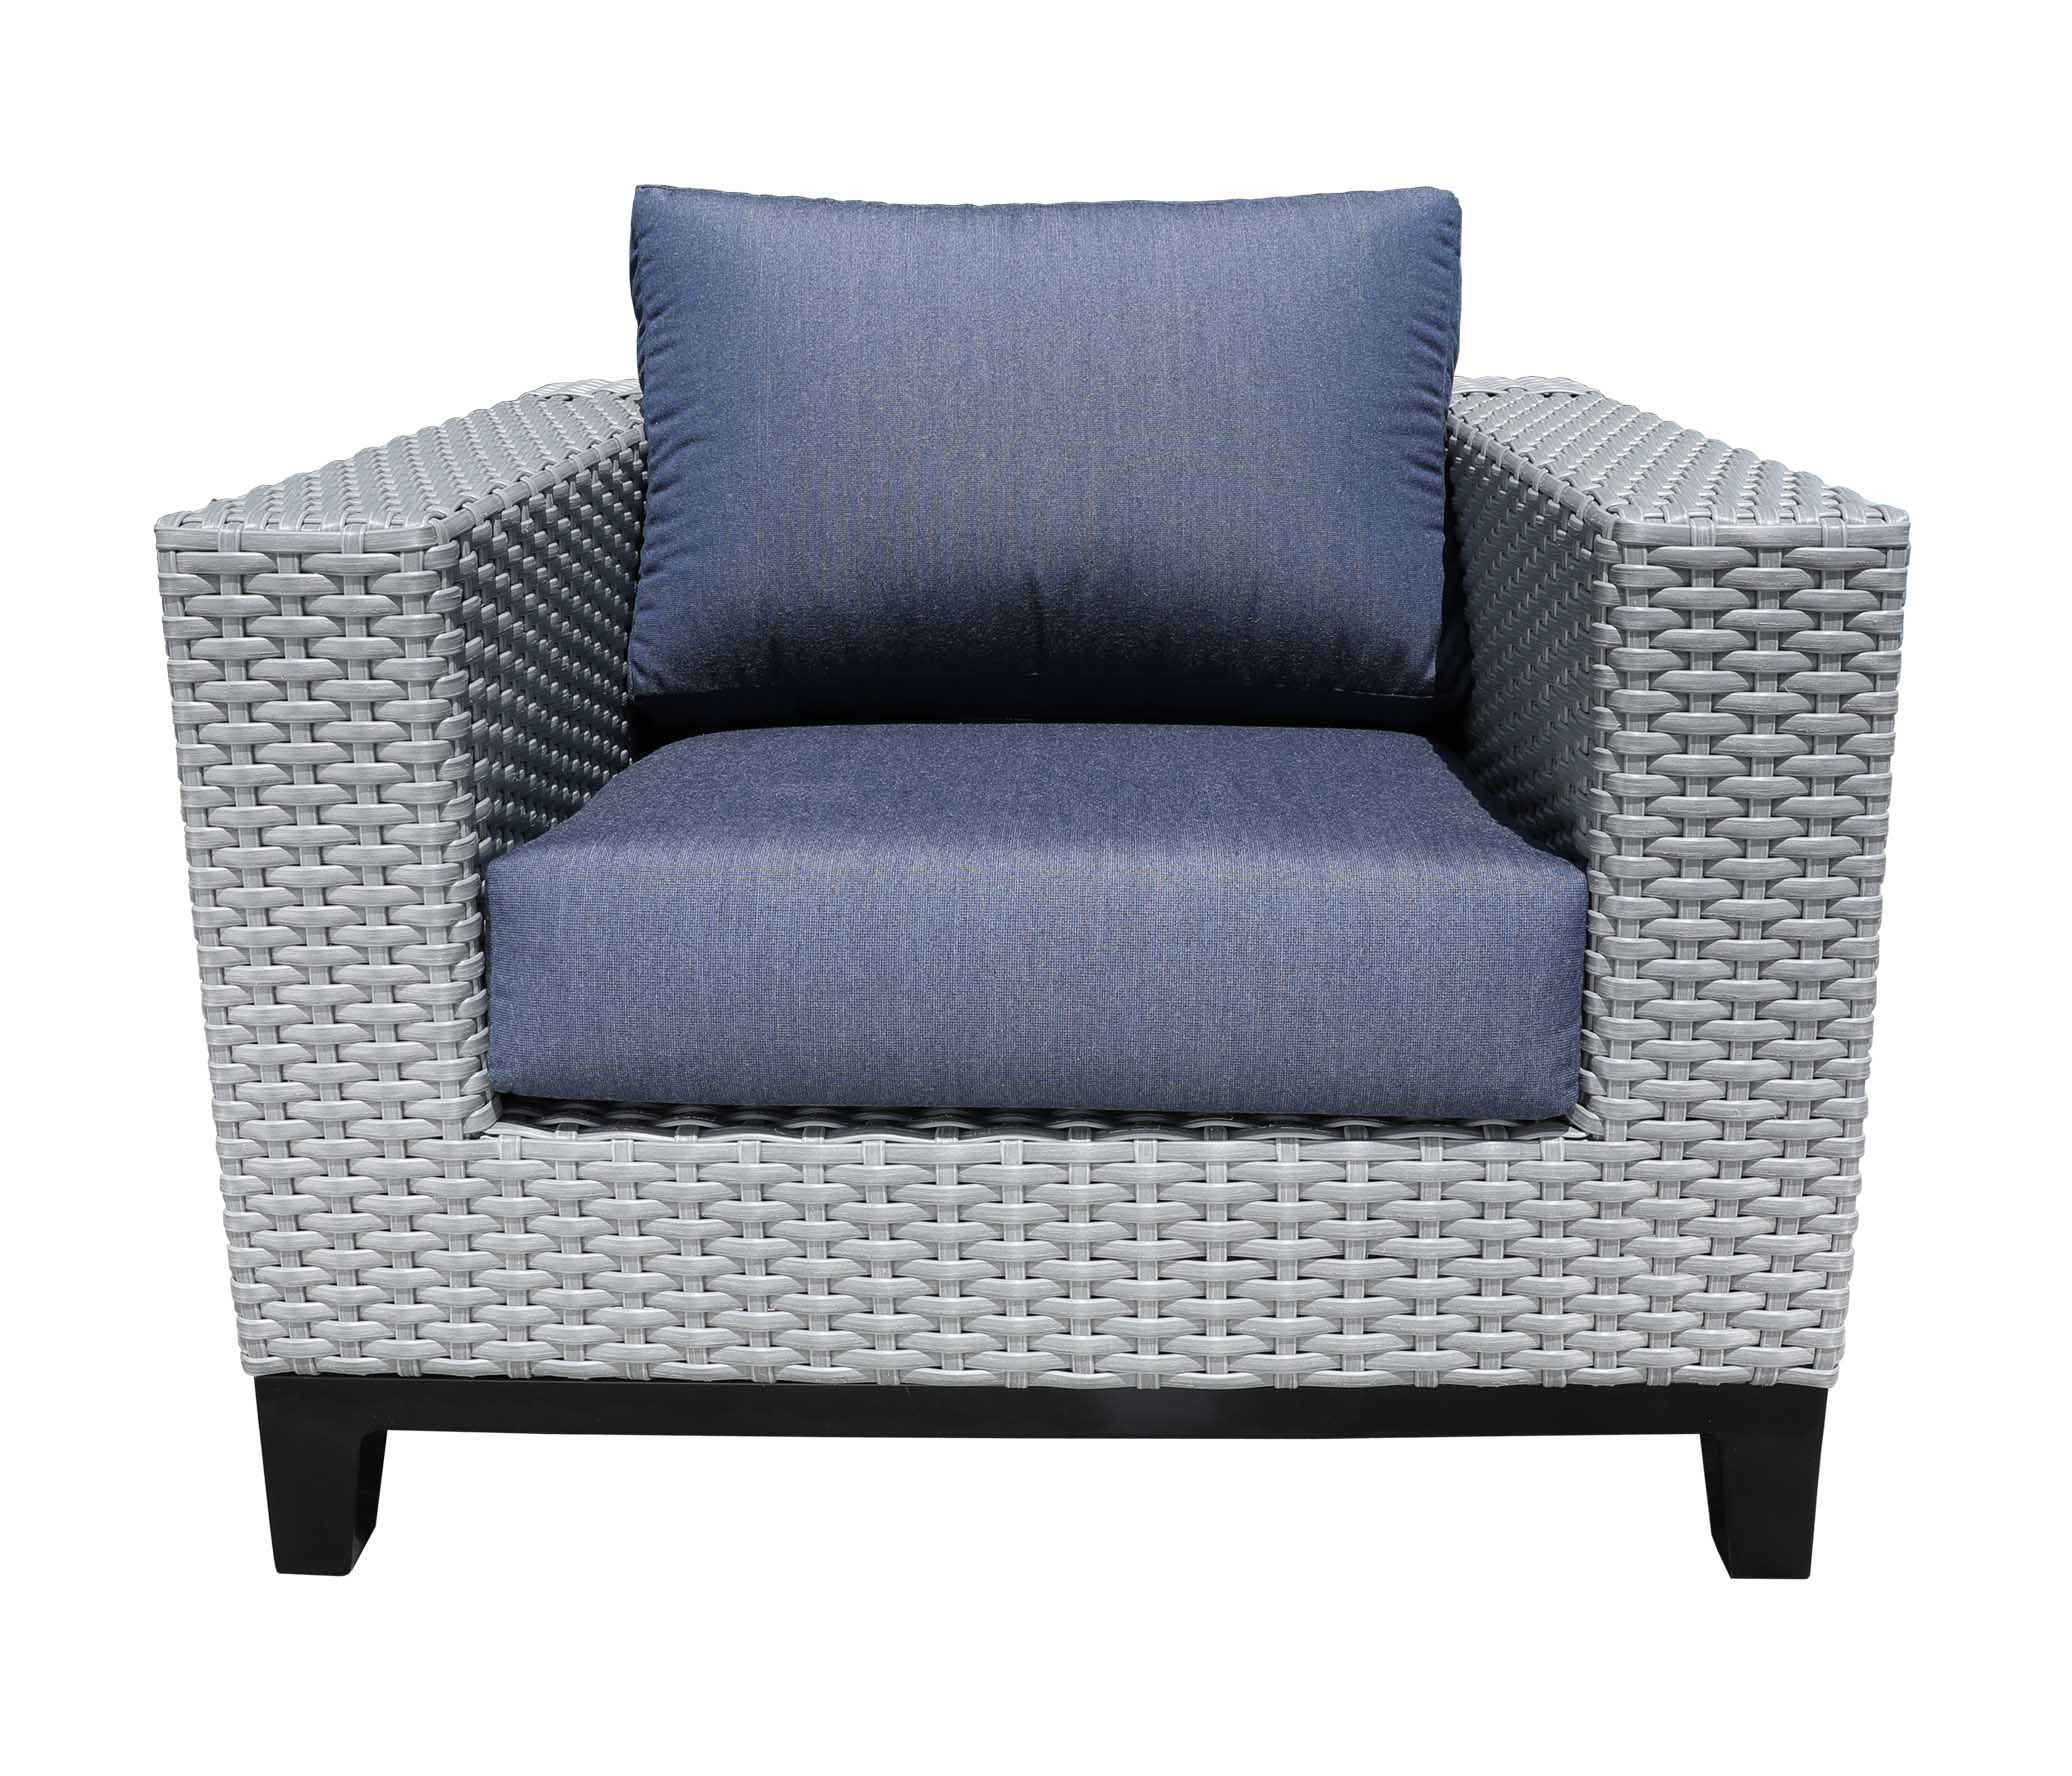 Oakville Outdoor Furniture Tribeca Deep Seat 9416 Patio Furniture Wicker